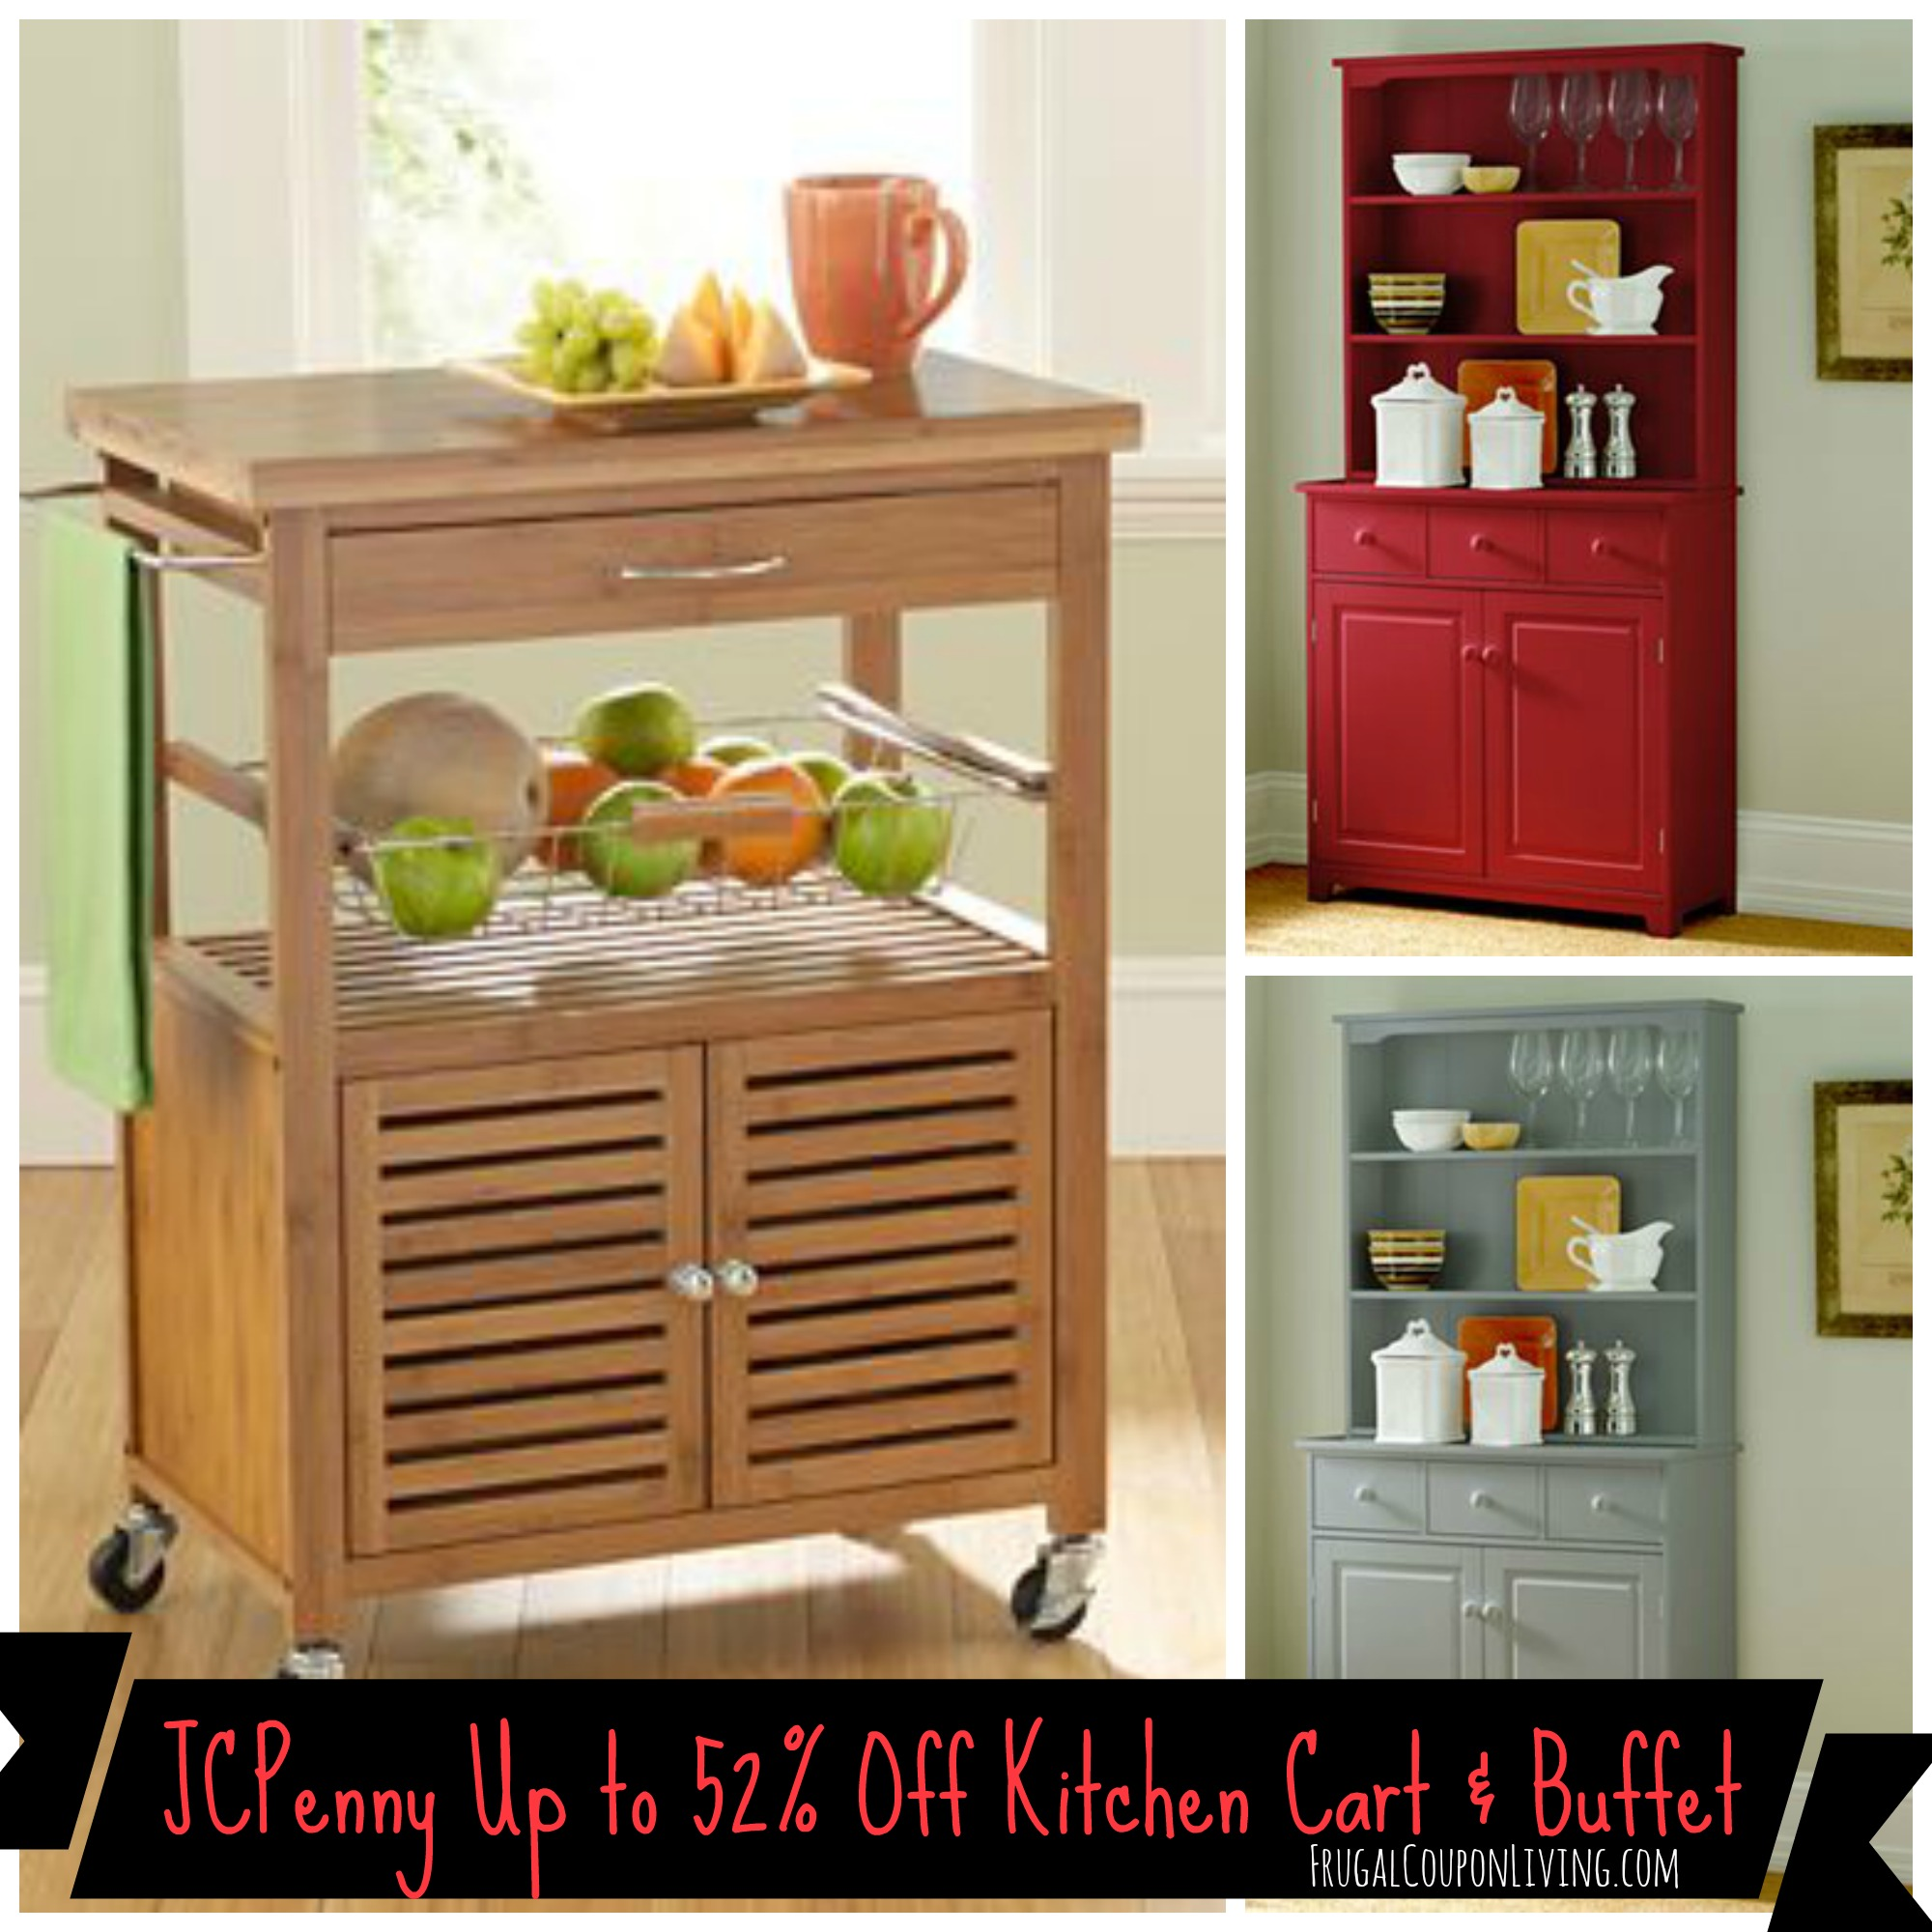 Jcpenney Save On Mandalay Bamboo Kitchen Cart Lindale Buffet Twin Sleeper Up To 52 Off